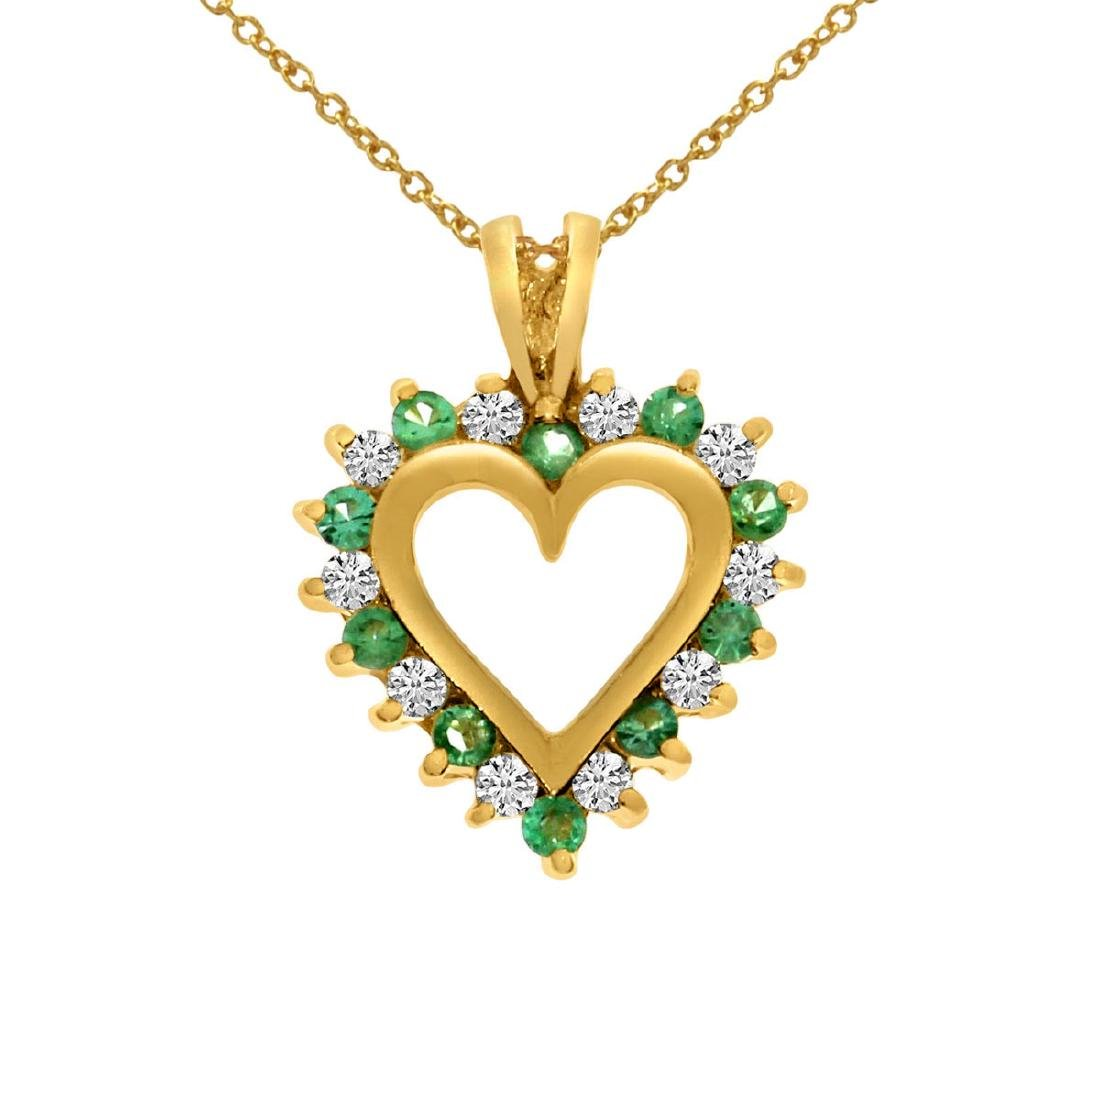 Certified 14k Yellow Gold Emerald and Diamond Heart Sha